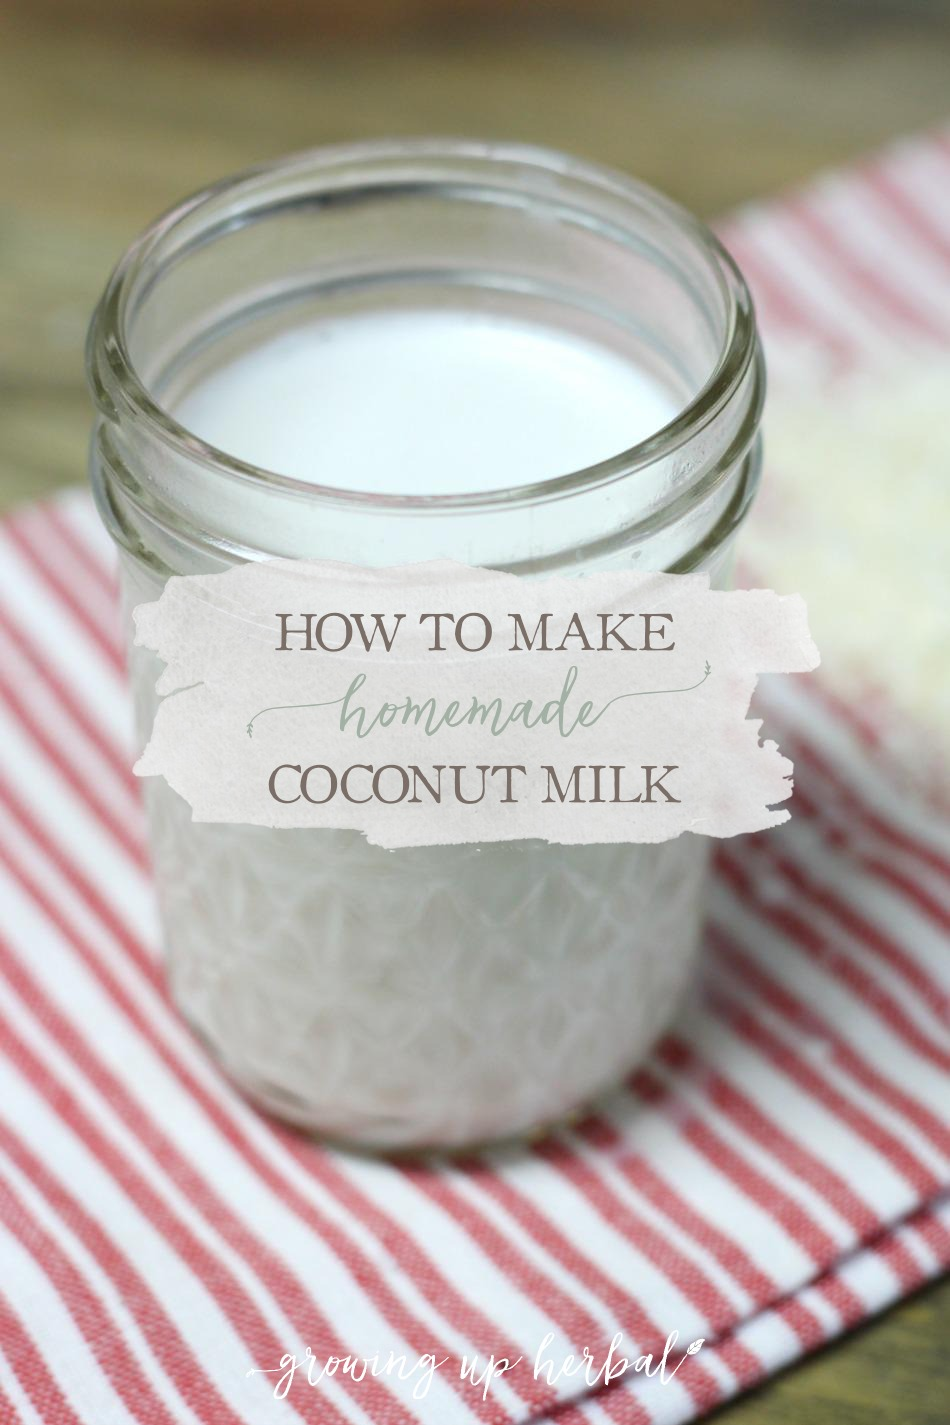 How To Make Homemade Coconut Milk | Growing Up Herbal | Make homemade coconut milk at home. It's easier than you think, and super healthy for you!